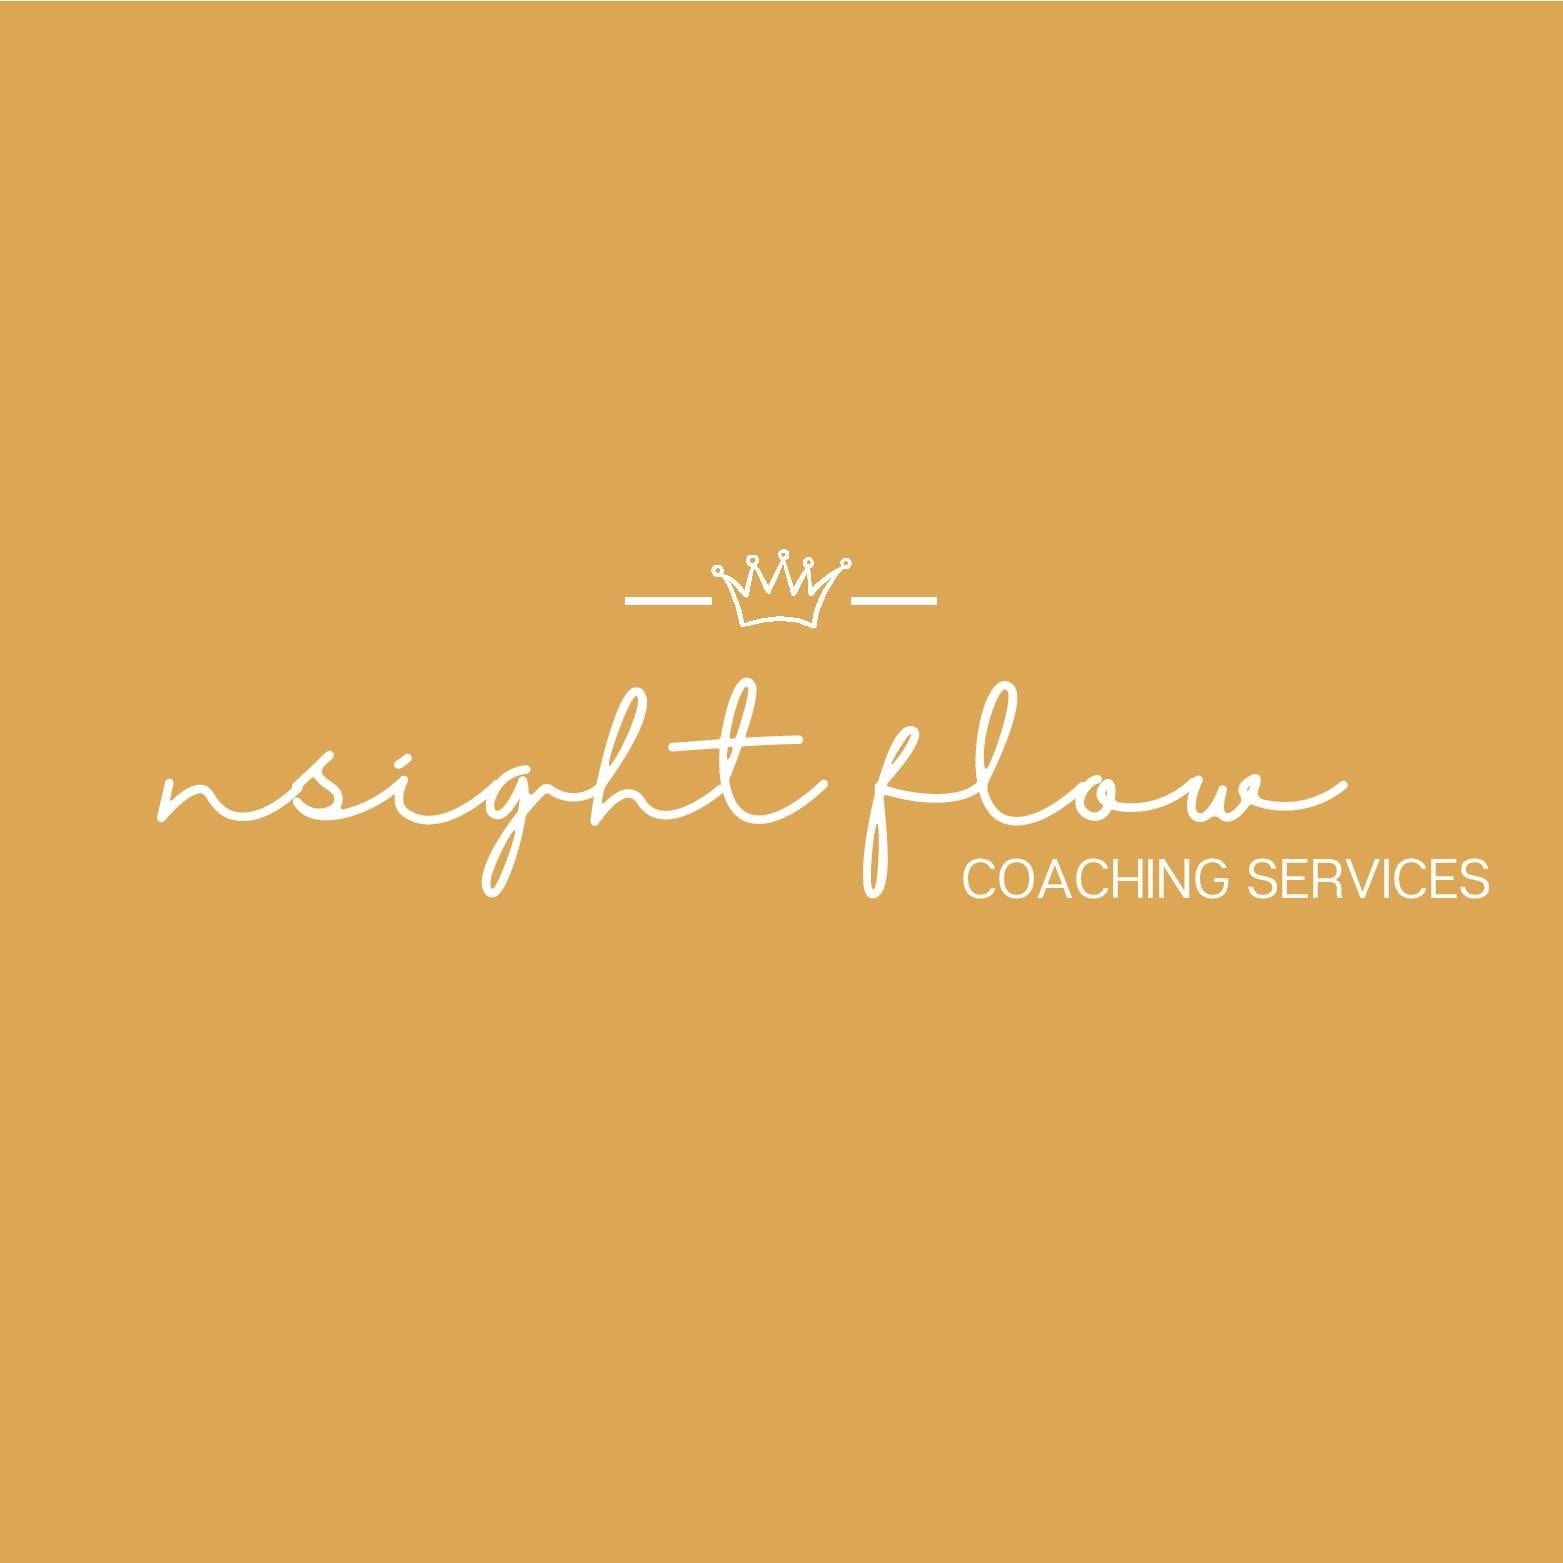 Nsight Flow Coaching Services